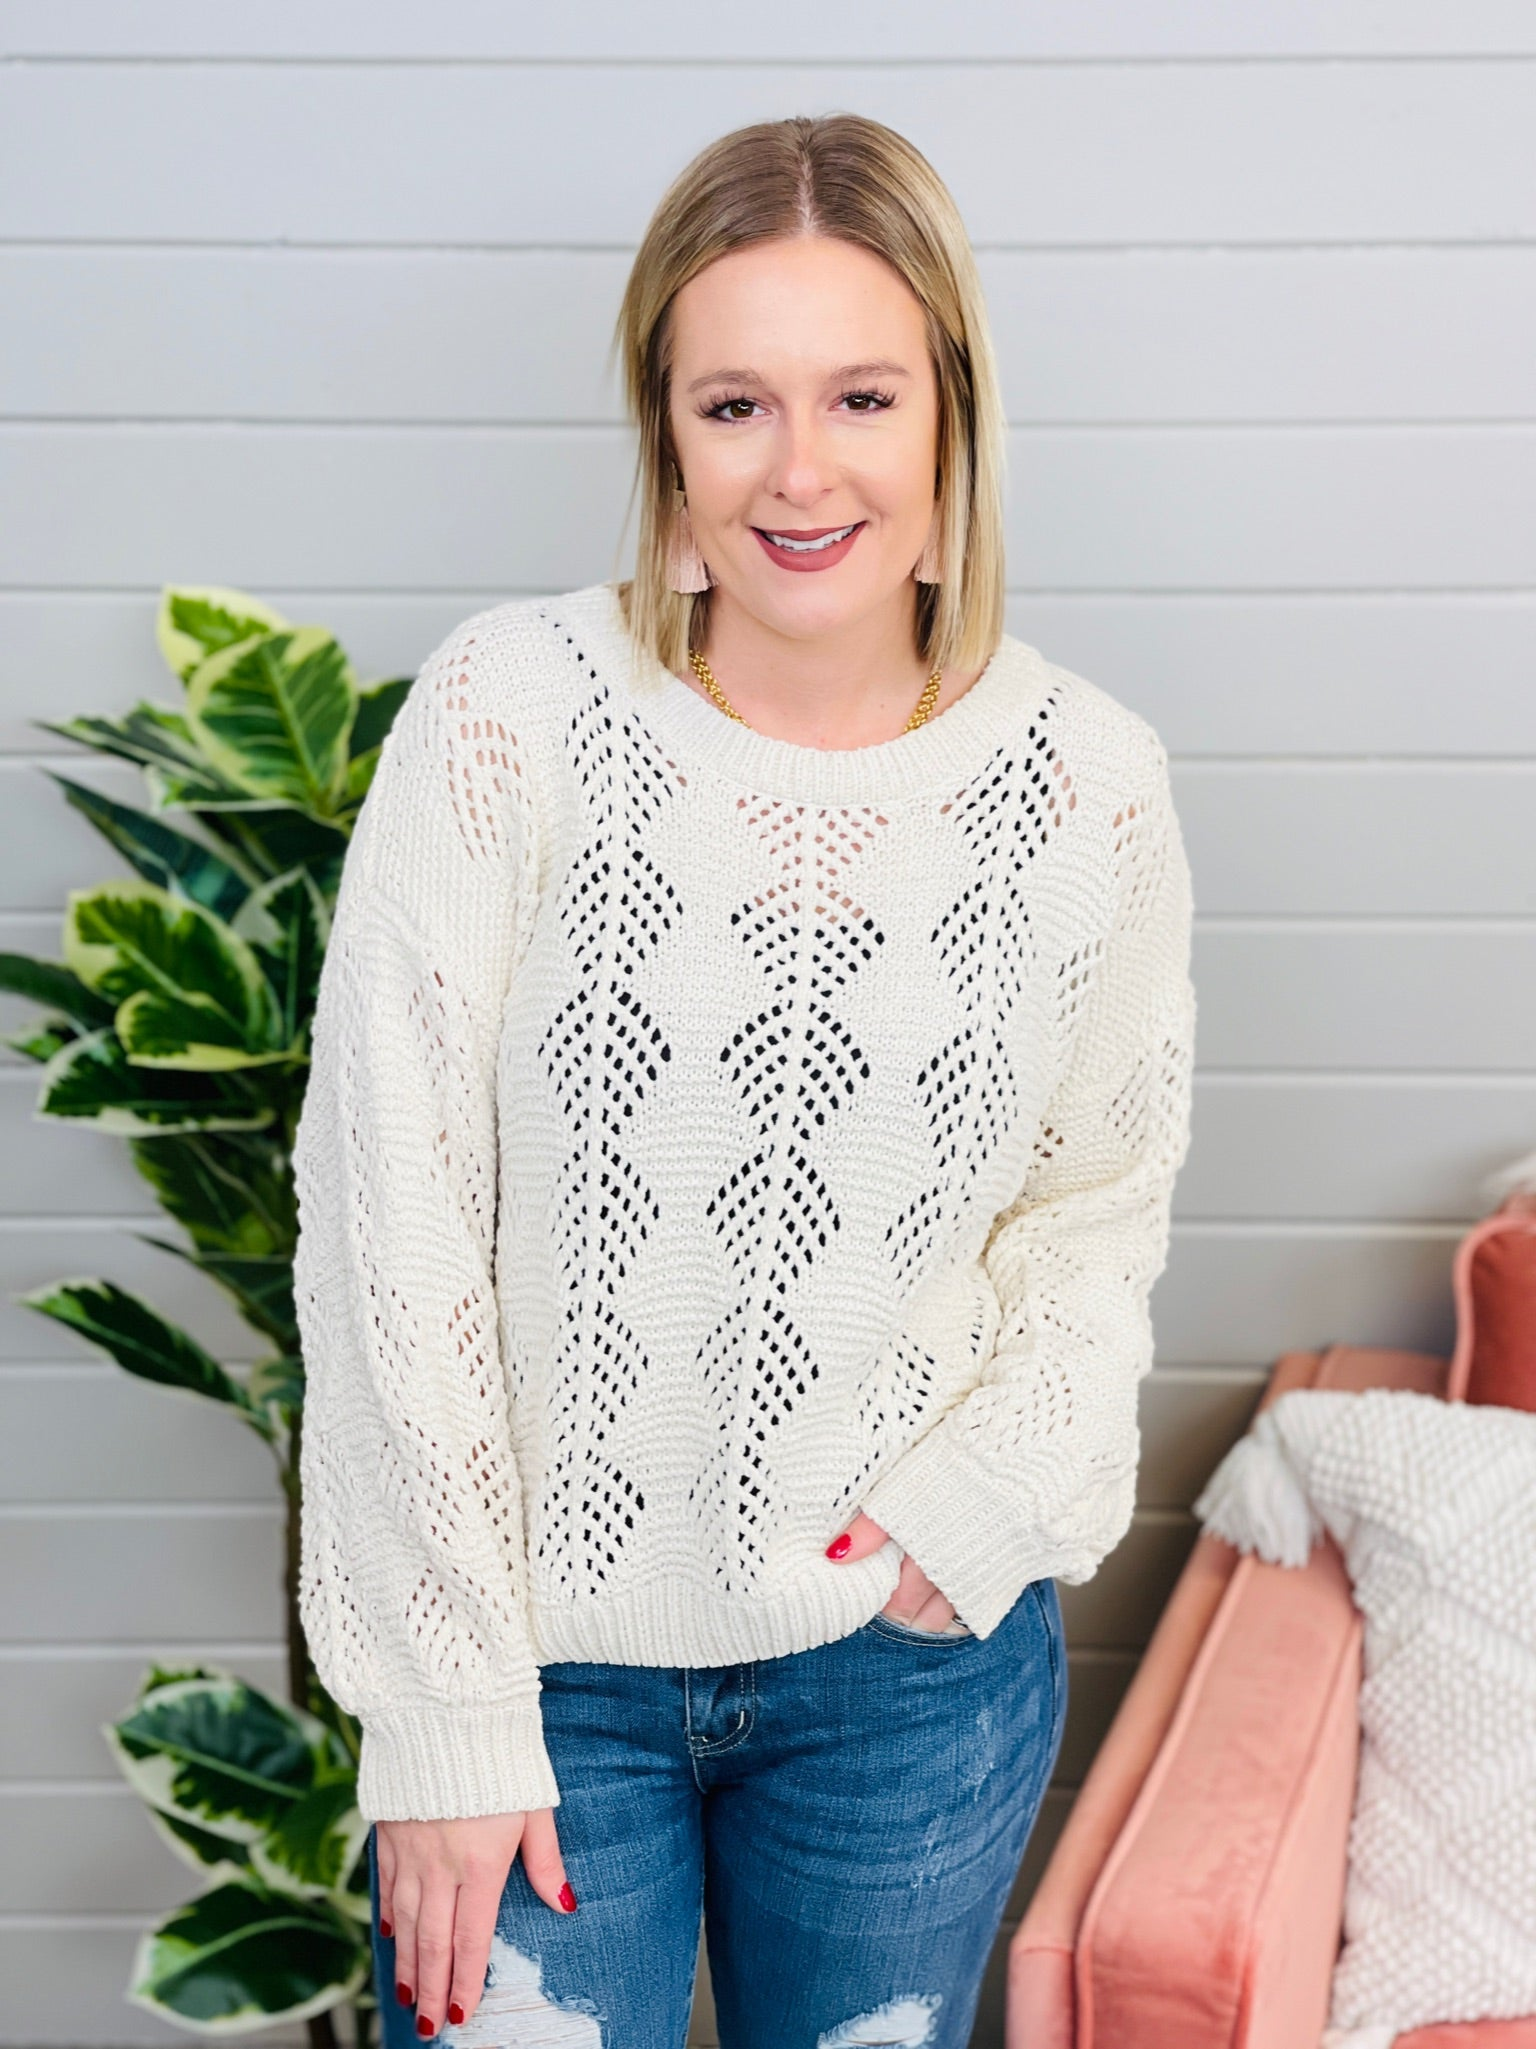 DOORBUSTER Warmest Occasion Sweater- 3 Colors!